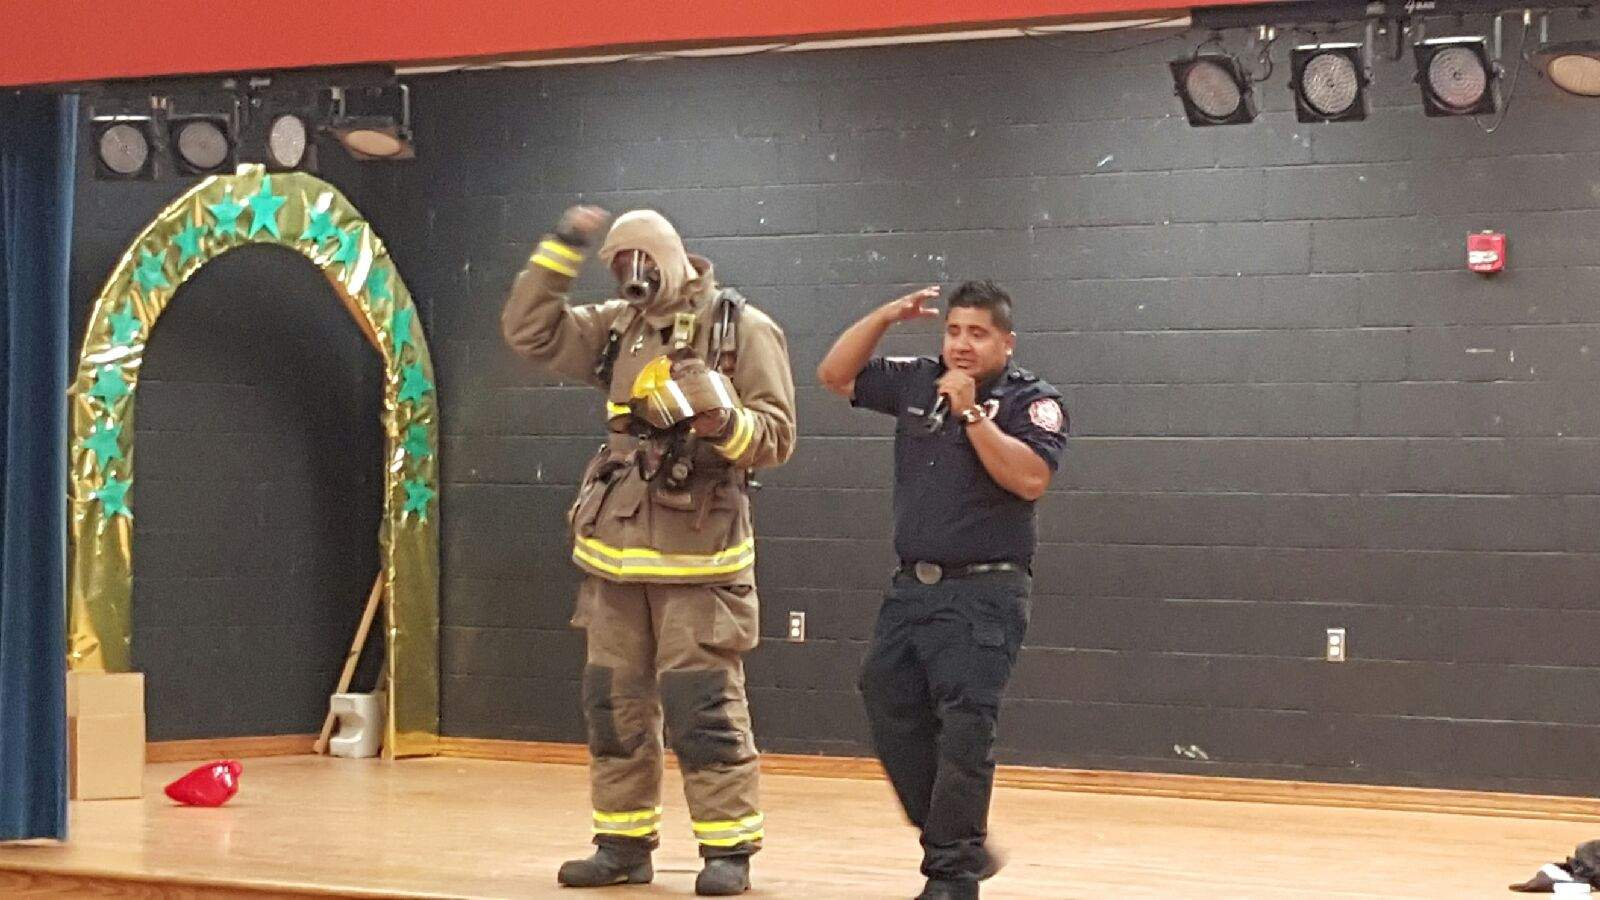 Firefighters demonstrate safety equipment